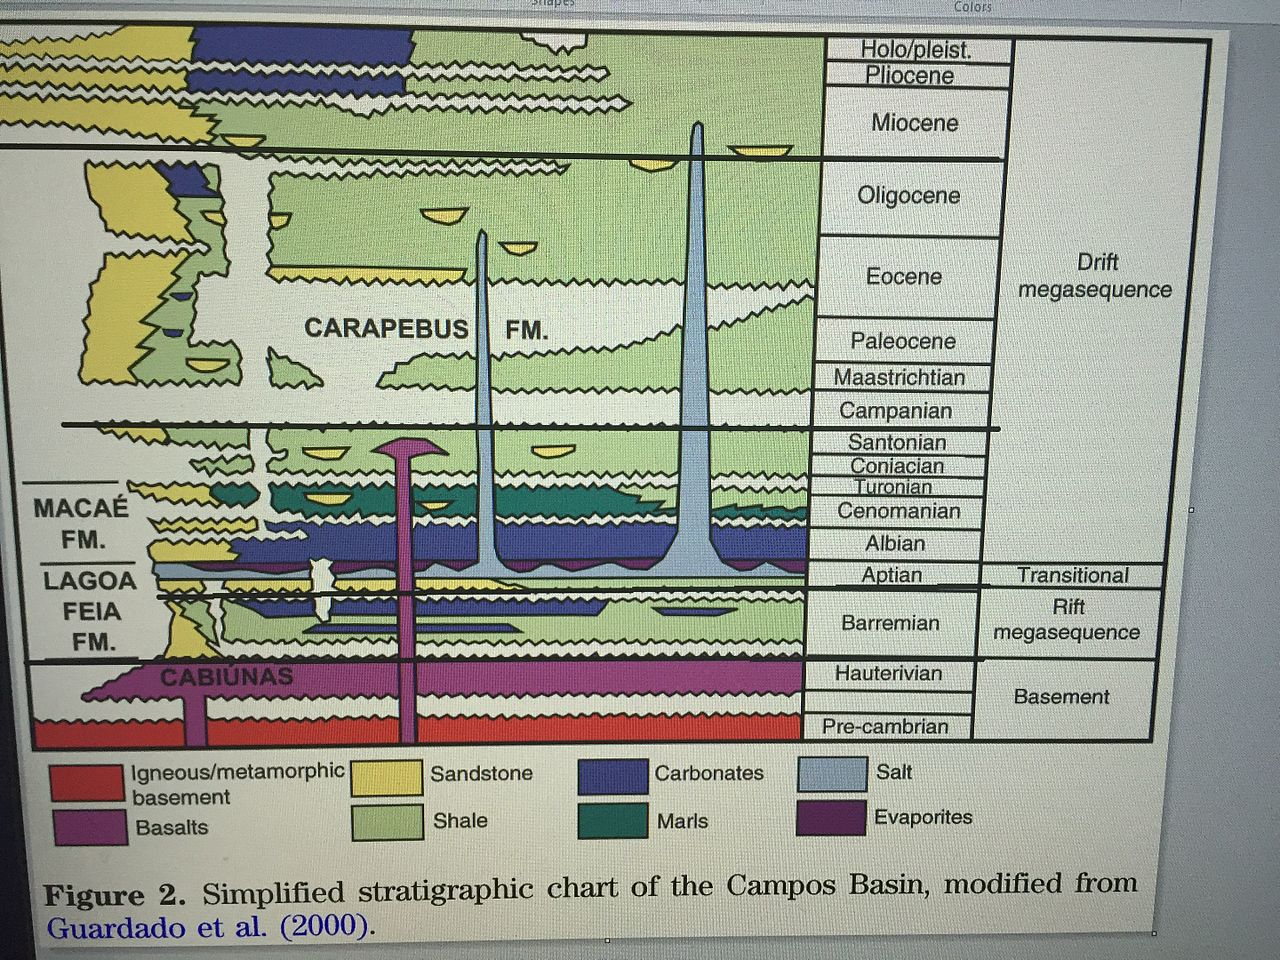 Apple Organizational Chart: Simplified stratigraphic chart of the Campos Basin.jpg ,Chart